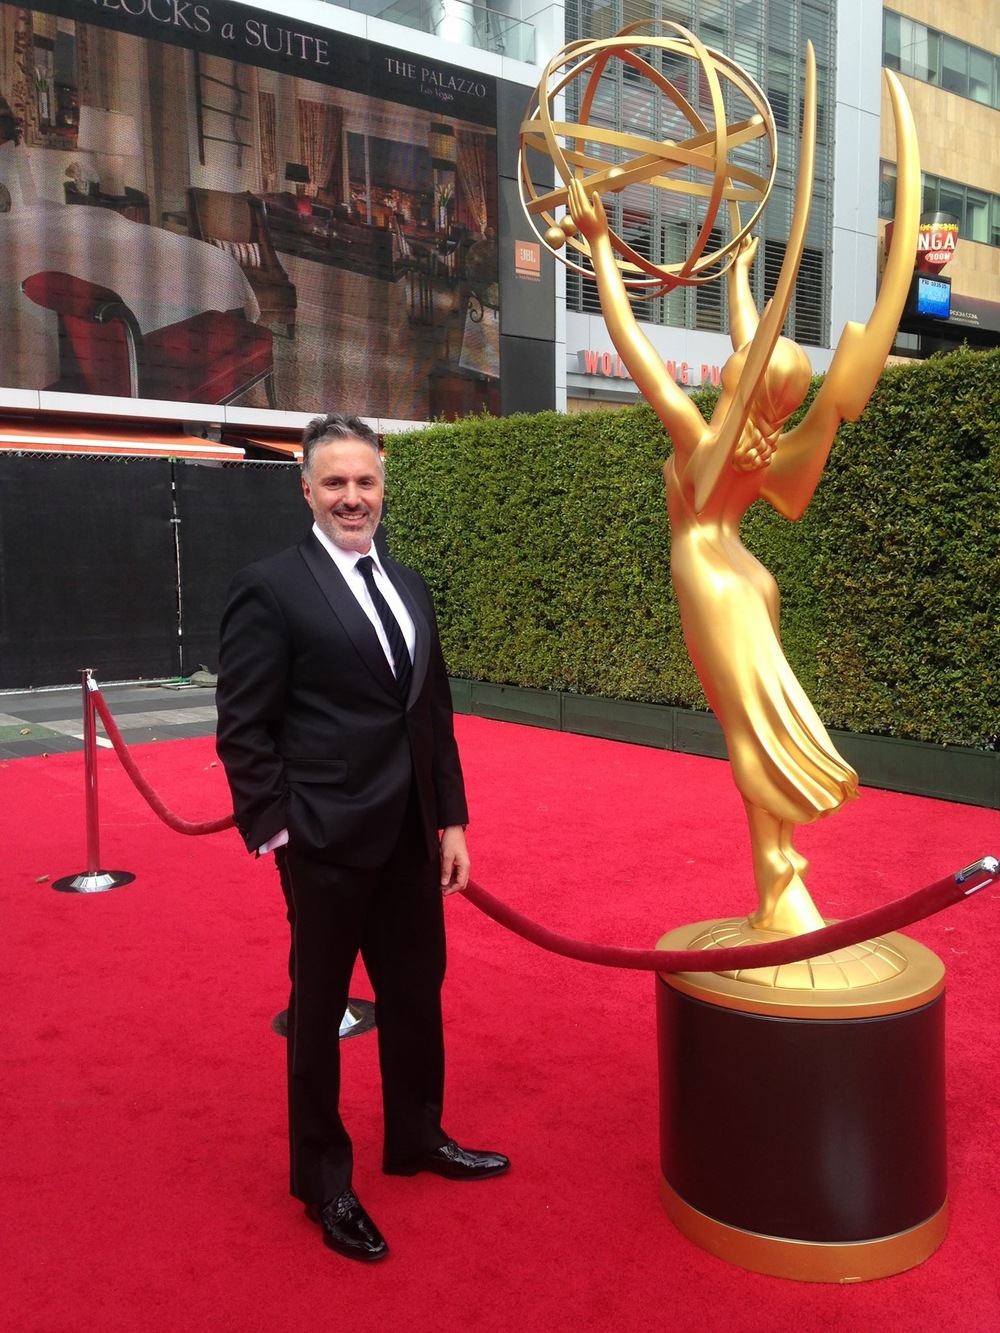 Congratulations to Nick, an Emmy® nominee, proudly wearing our tie on the red carpet!  (Image: © Nick DeMayo)